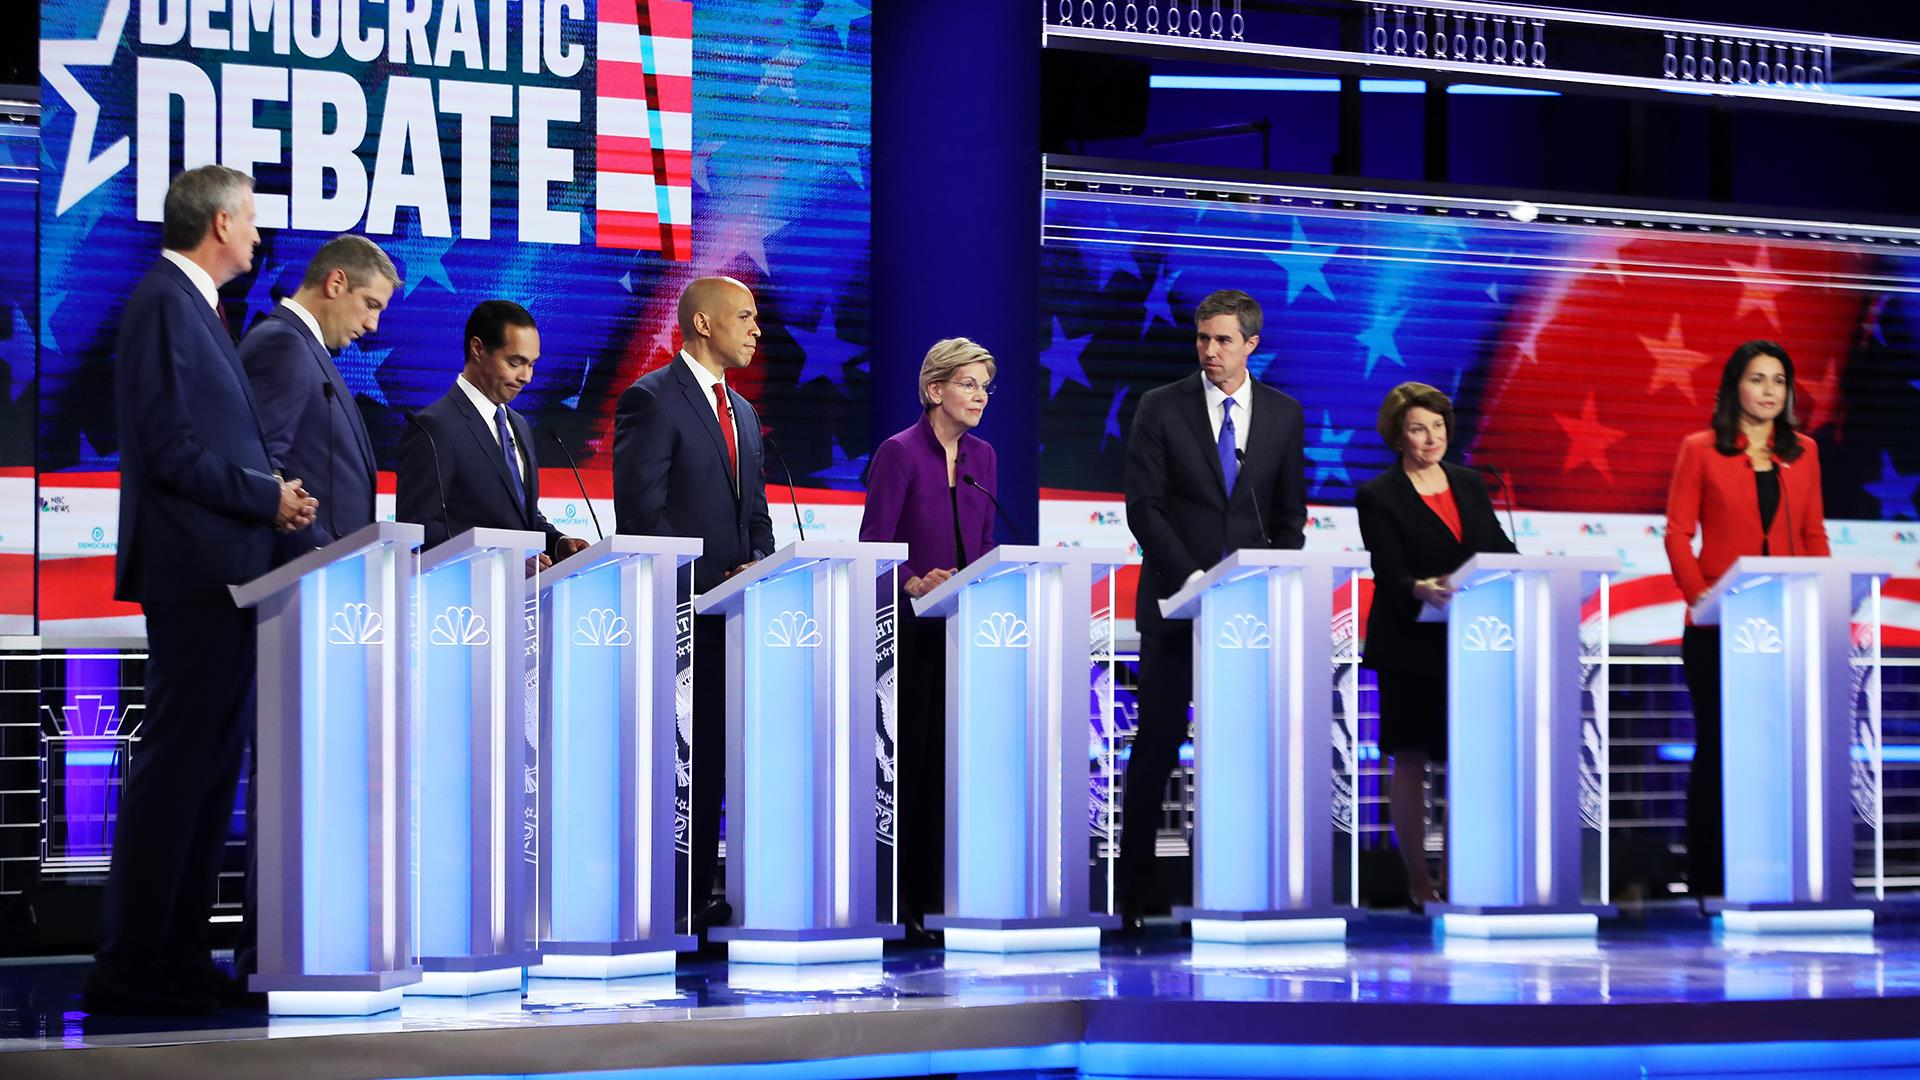 Would Democratic candidates get rid of private health insurance?